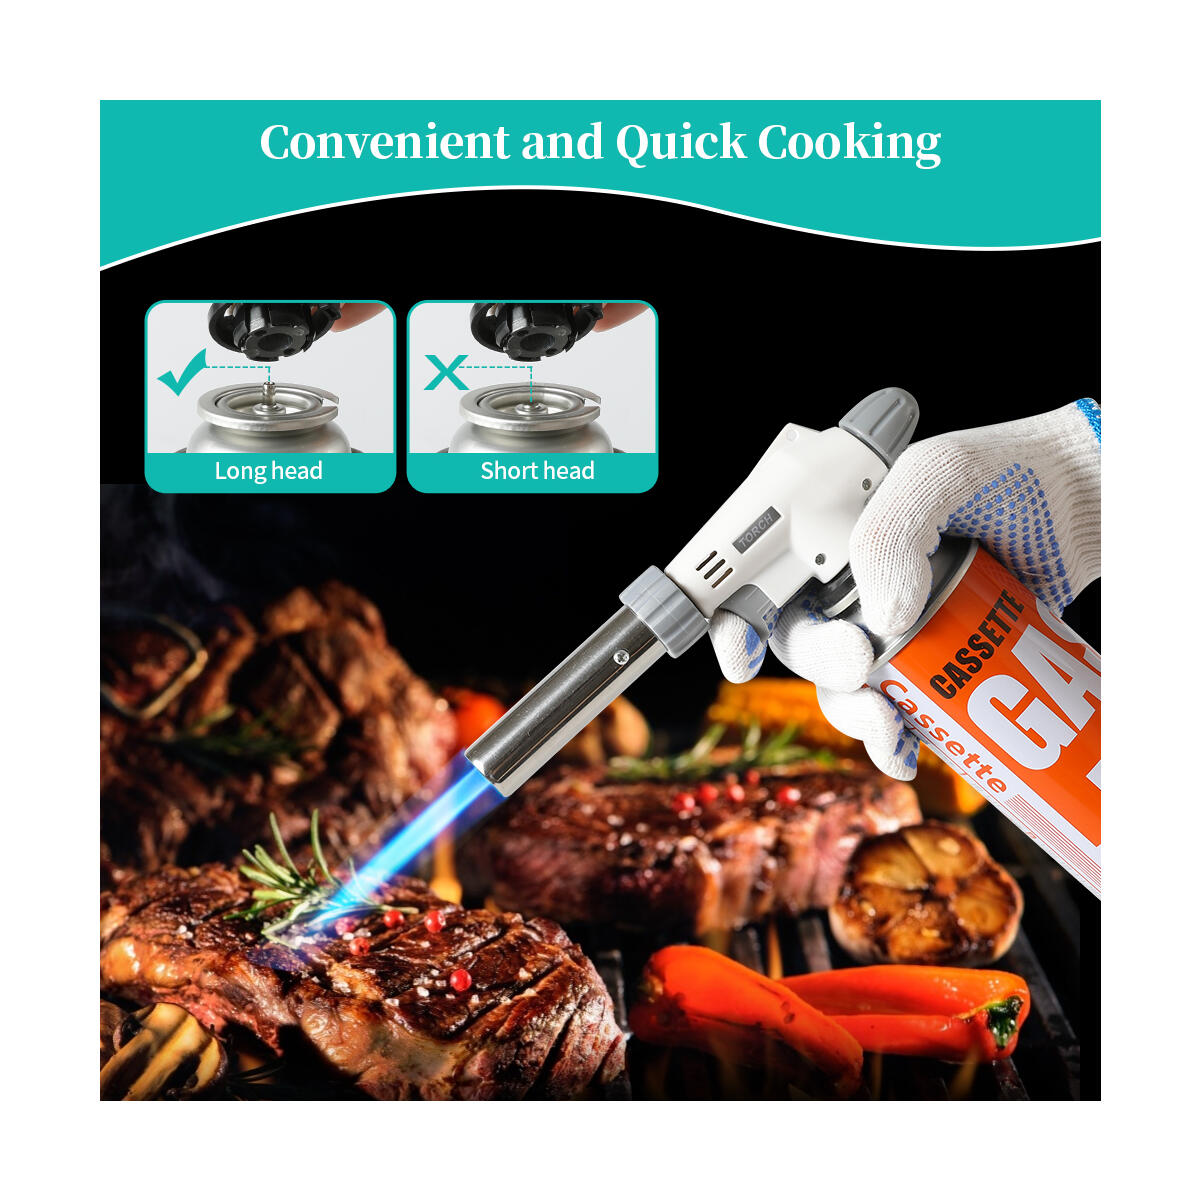 MINIDIO Butane Torch chef cooking professional adjustable flame -Cooking torch Kitchen butane torch lighter,cream, Caramel,pudding,BBQ,Baking (Excluding butane gas)